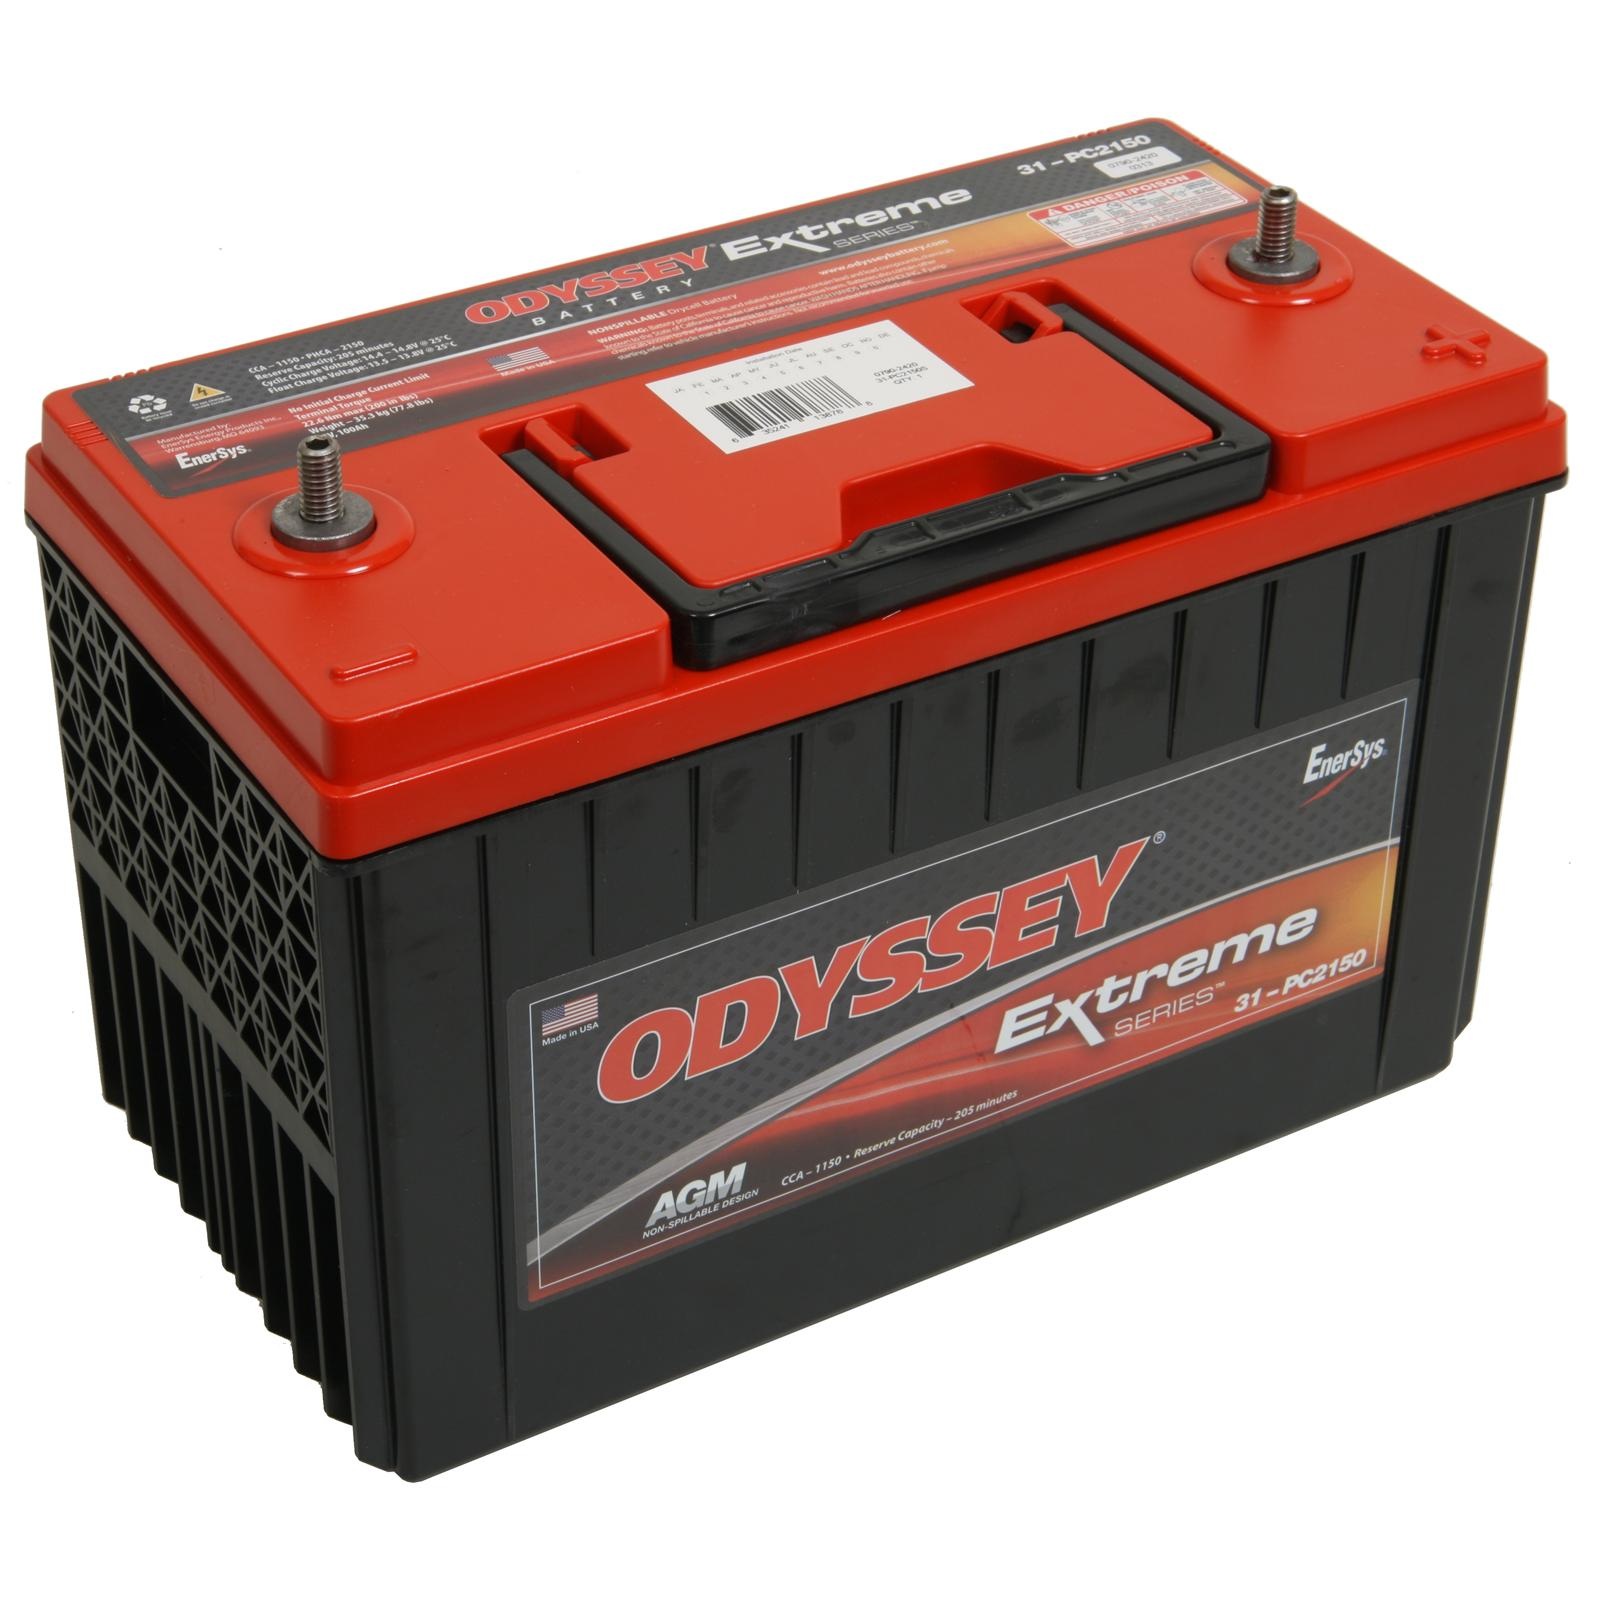 Odyssey 31 Pc2150s Drycell Battery Battery Pete